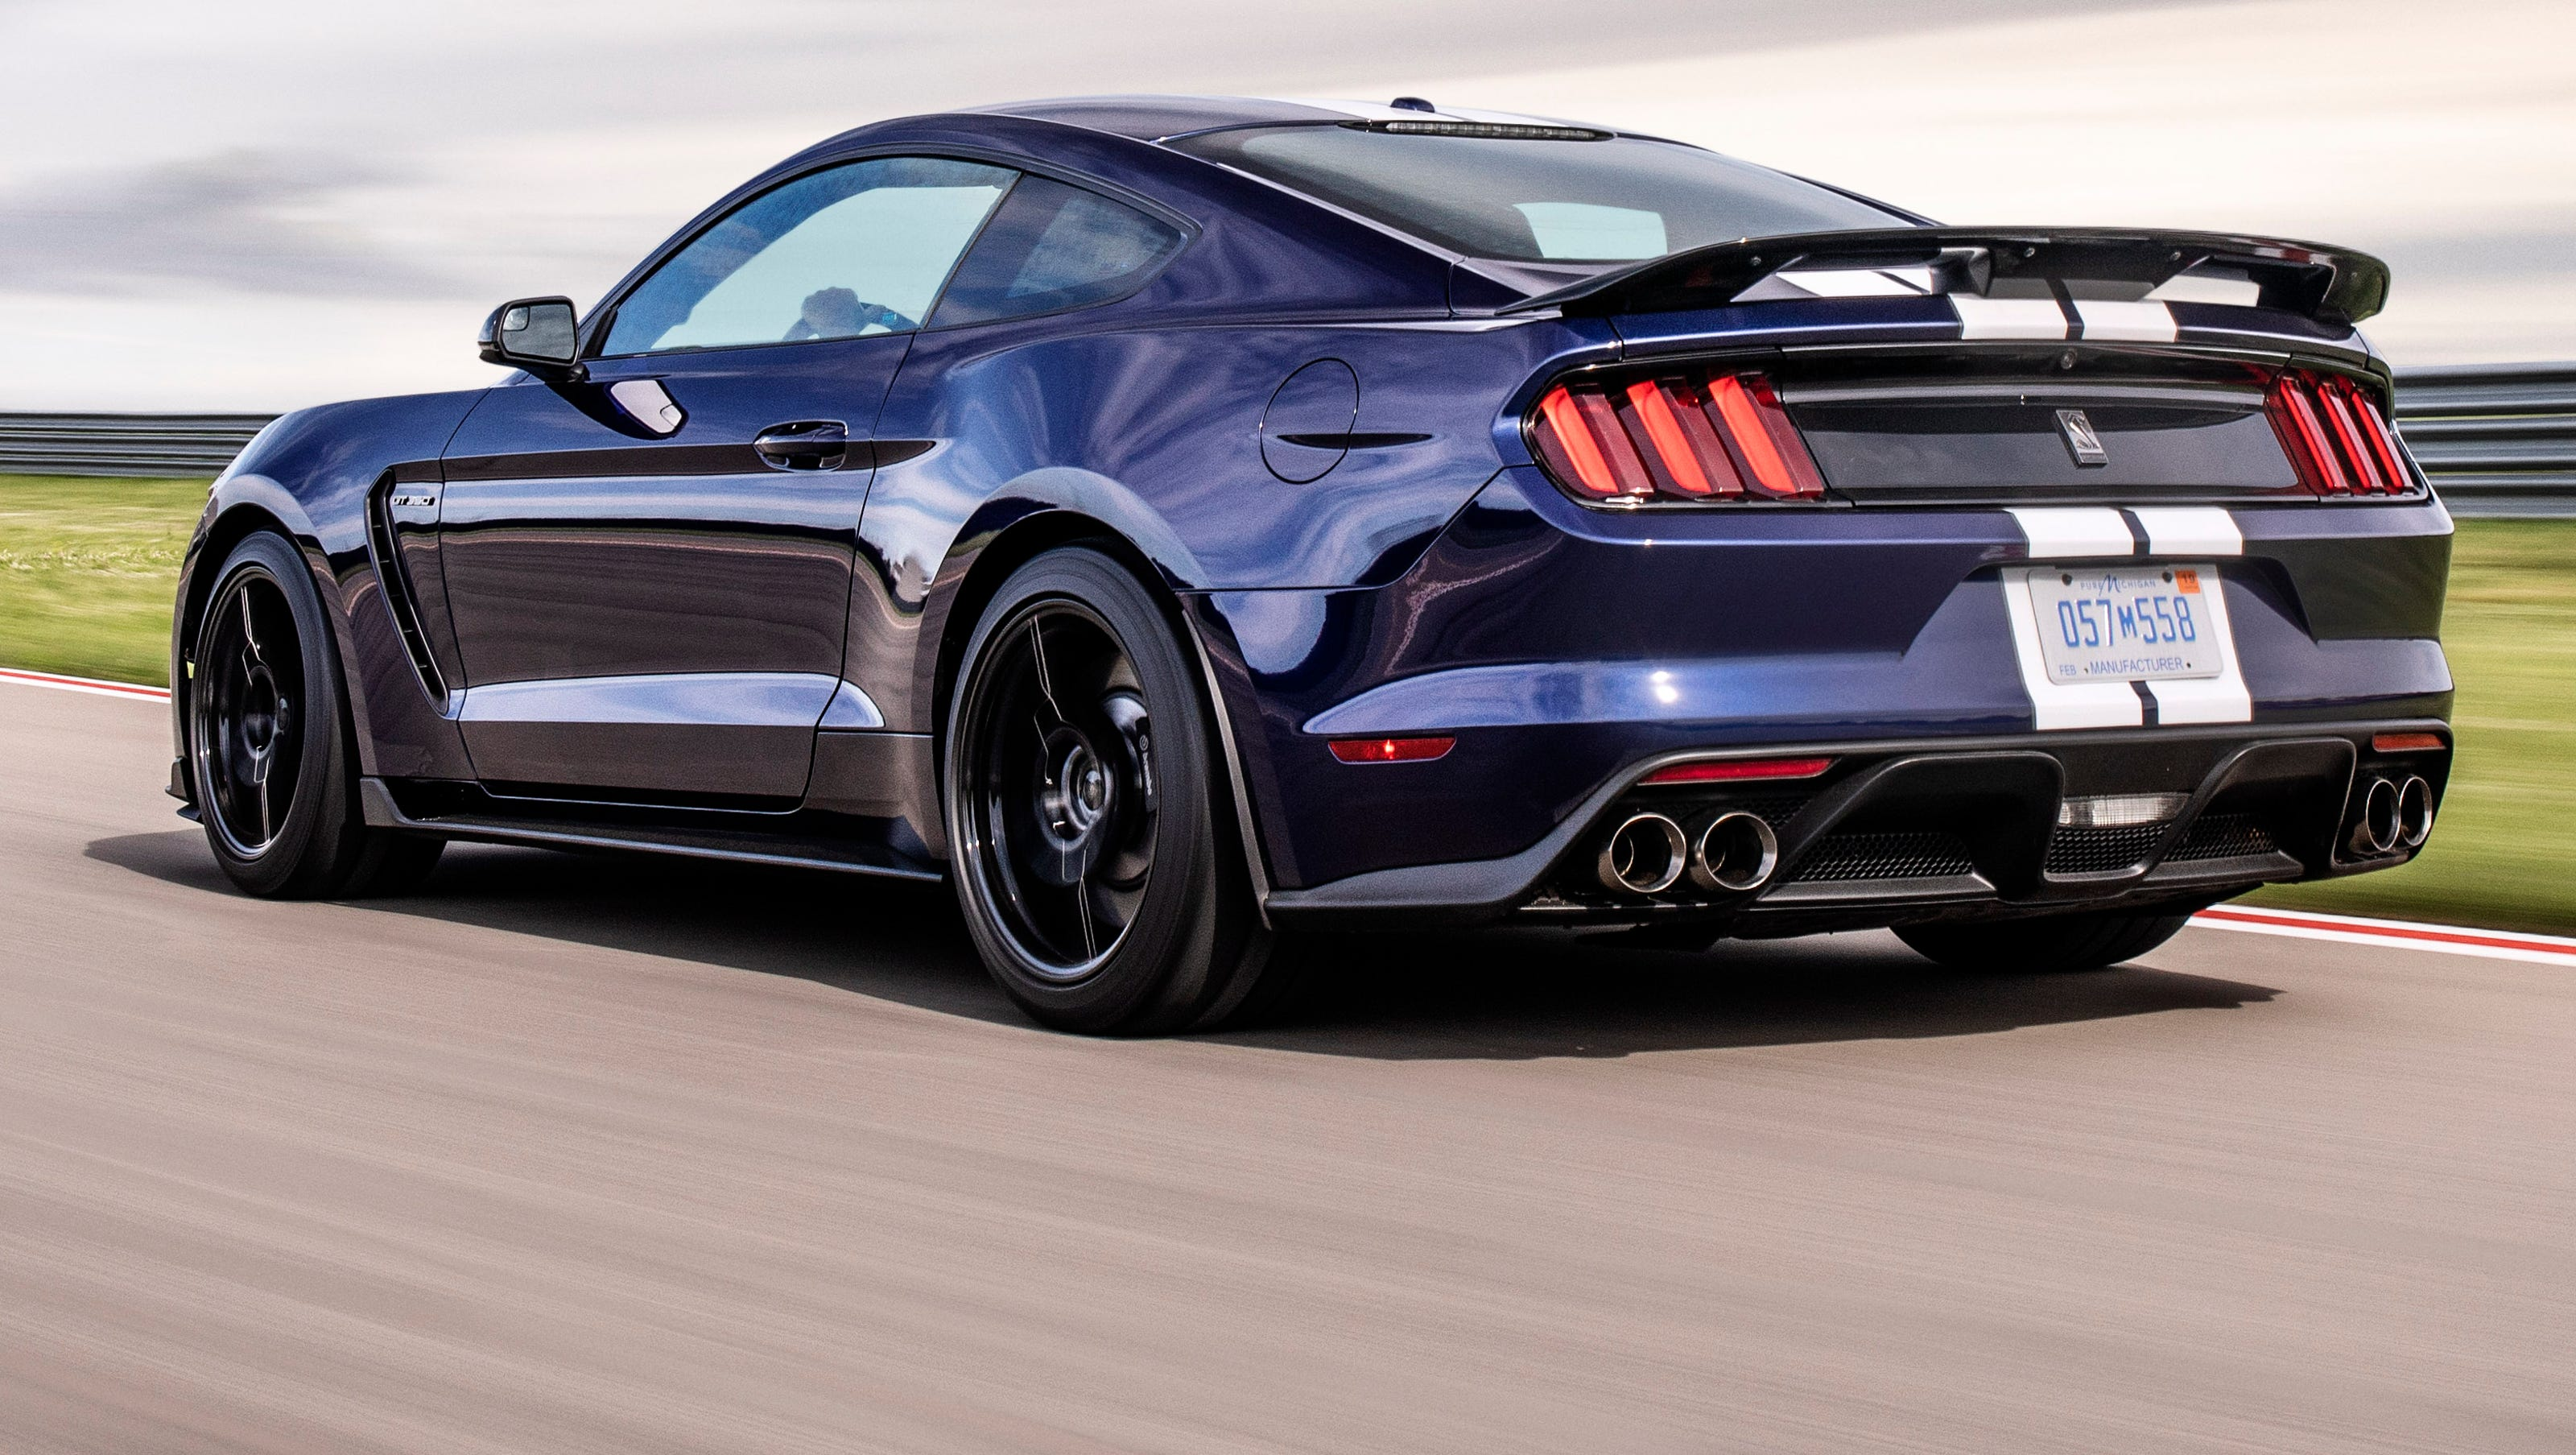 Mustang Shelby Gt350 Gets Upgrade From Ford For 2019